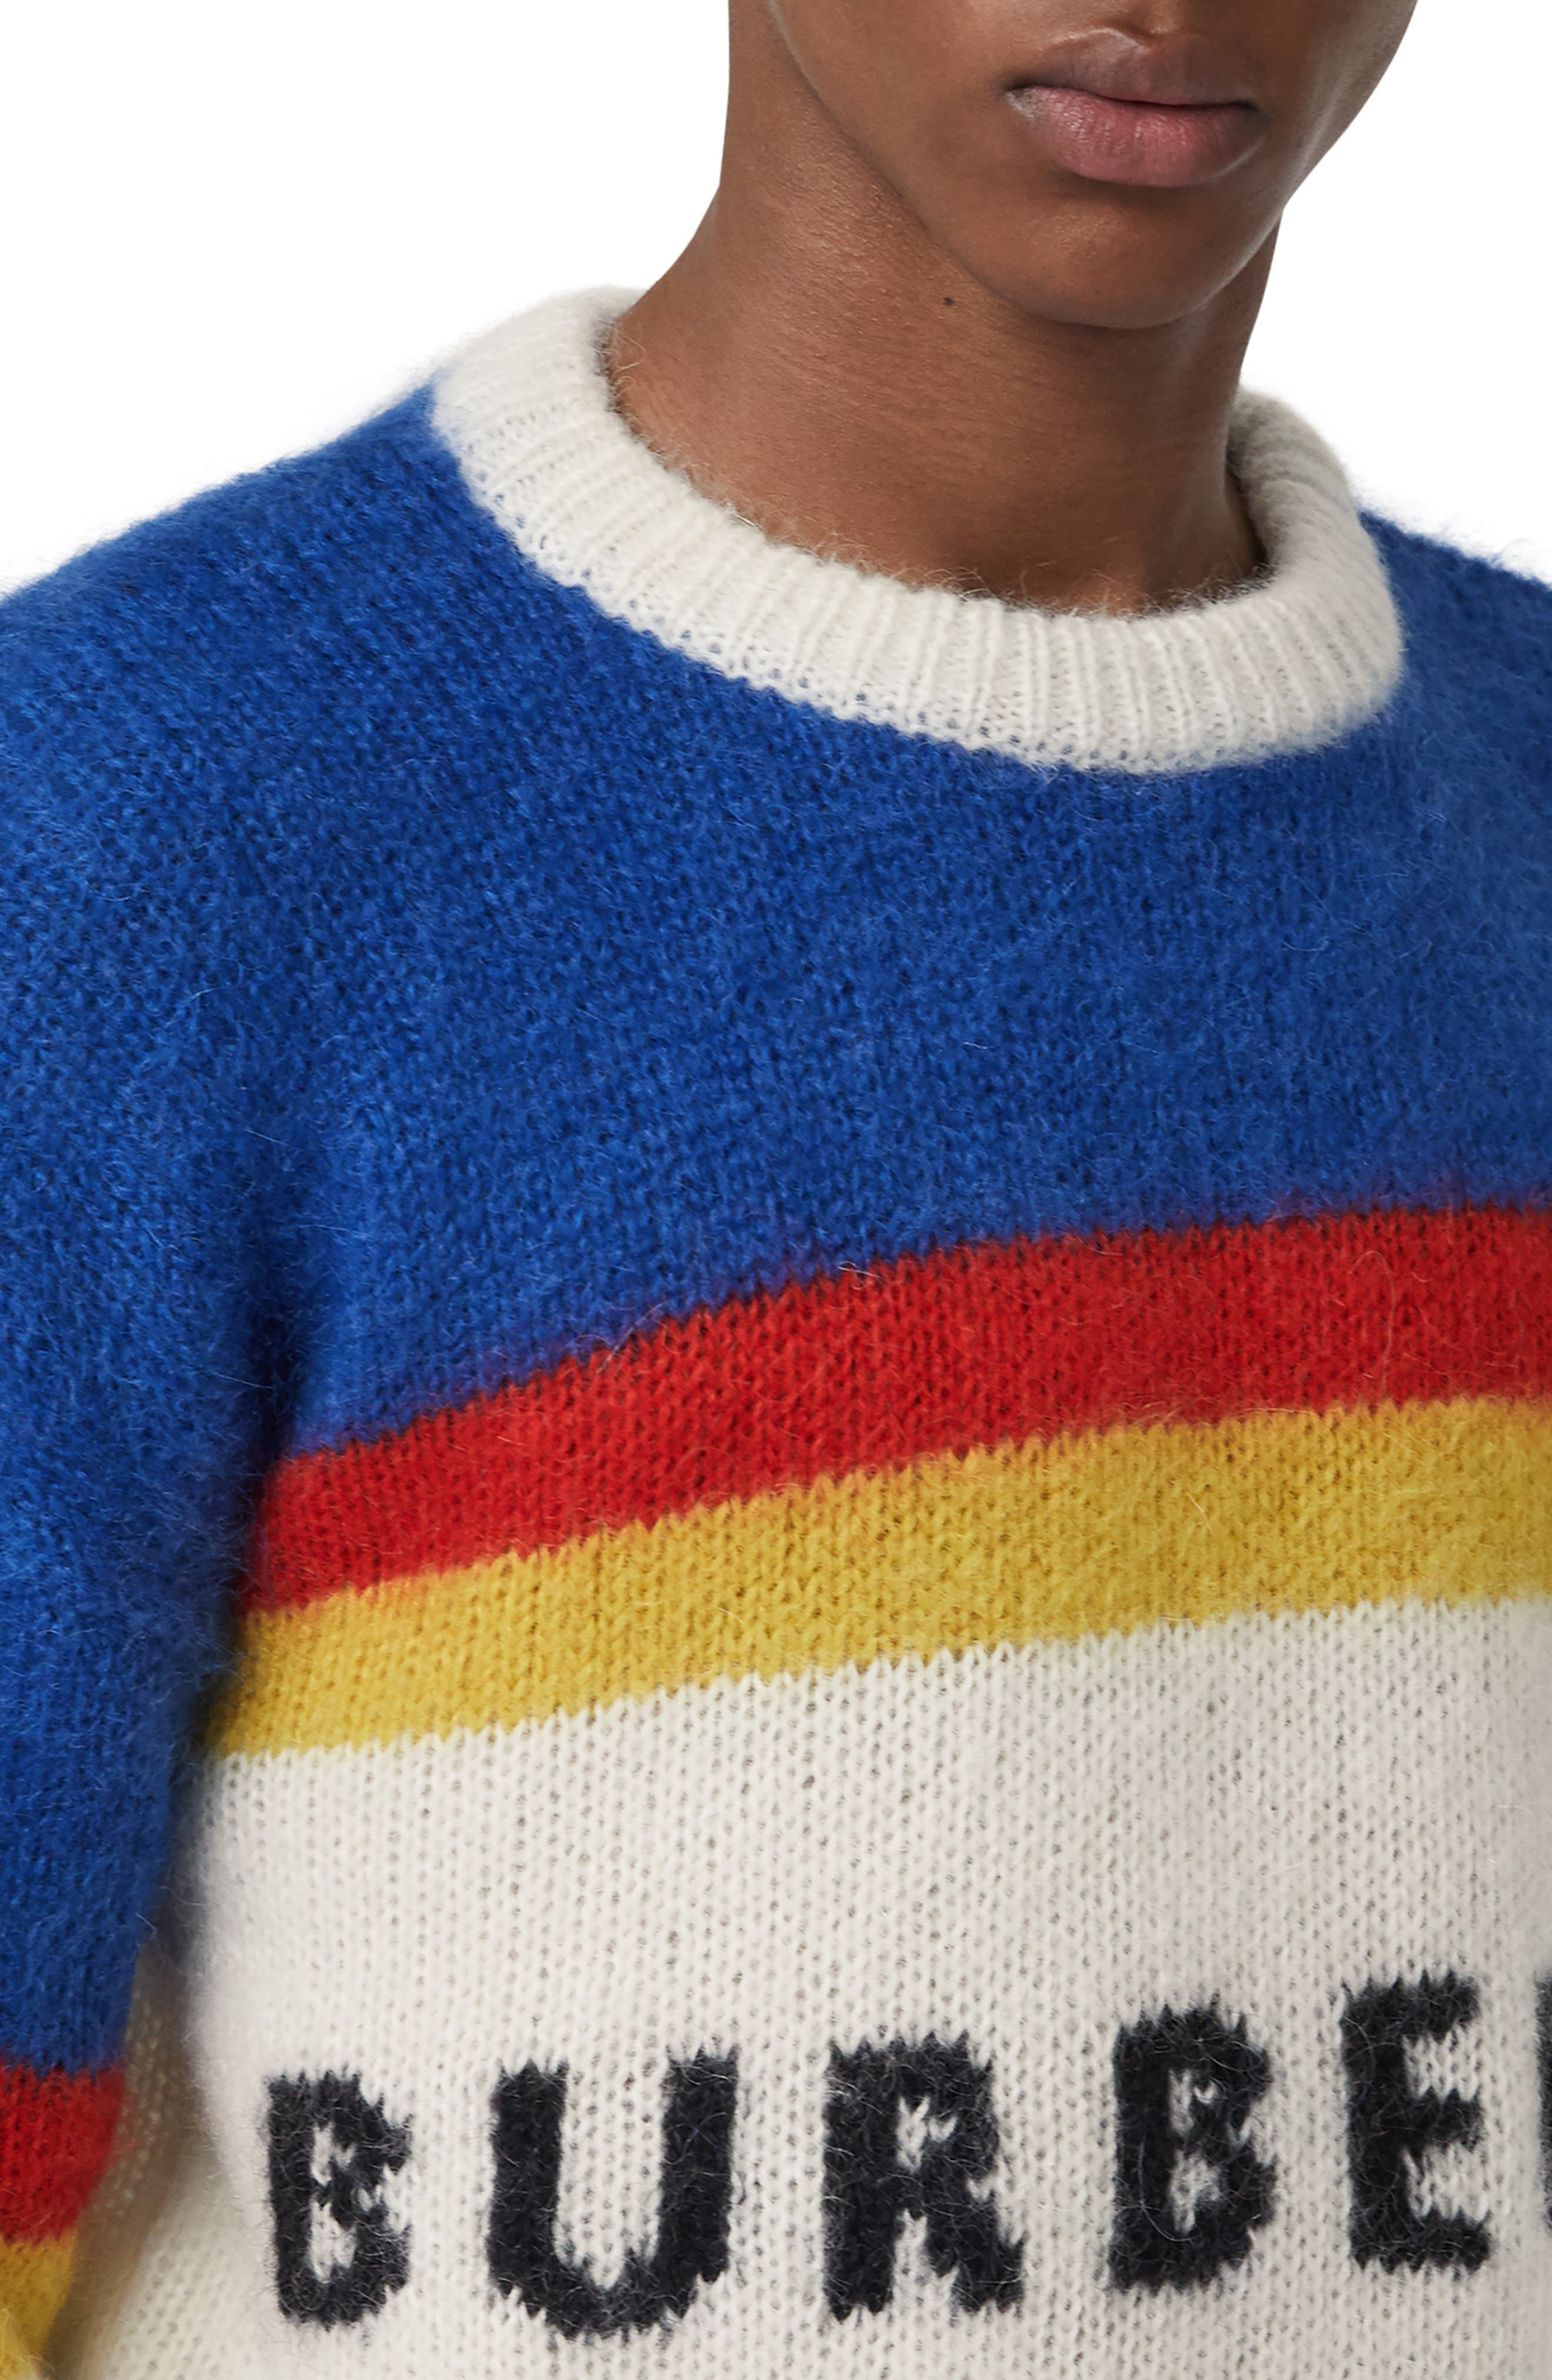 Osbourne Crewneck Sweater,                             Alternate thumbnail 3, color,                             400